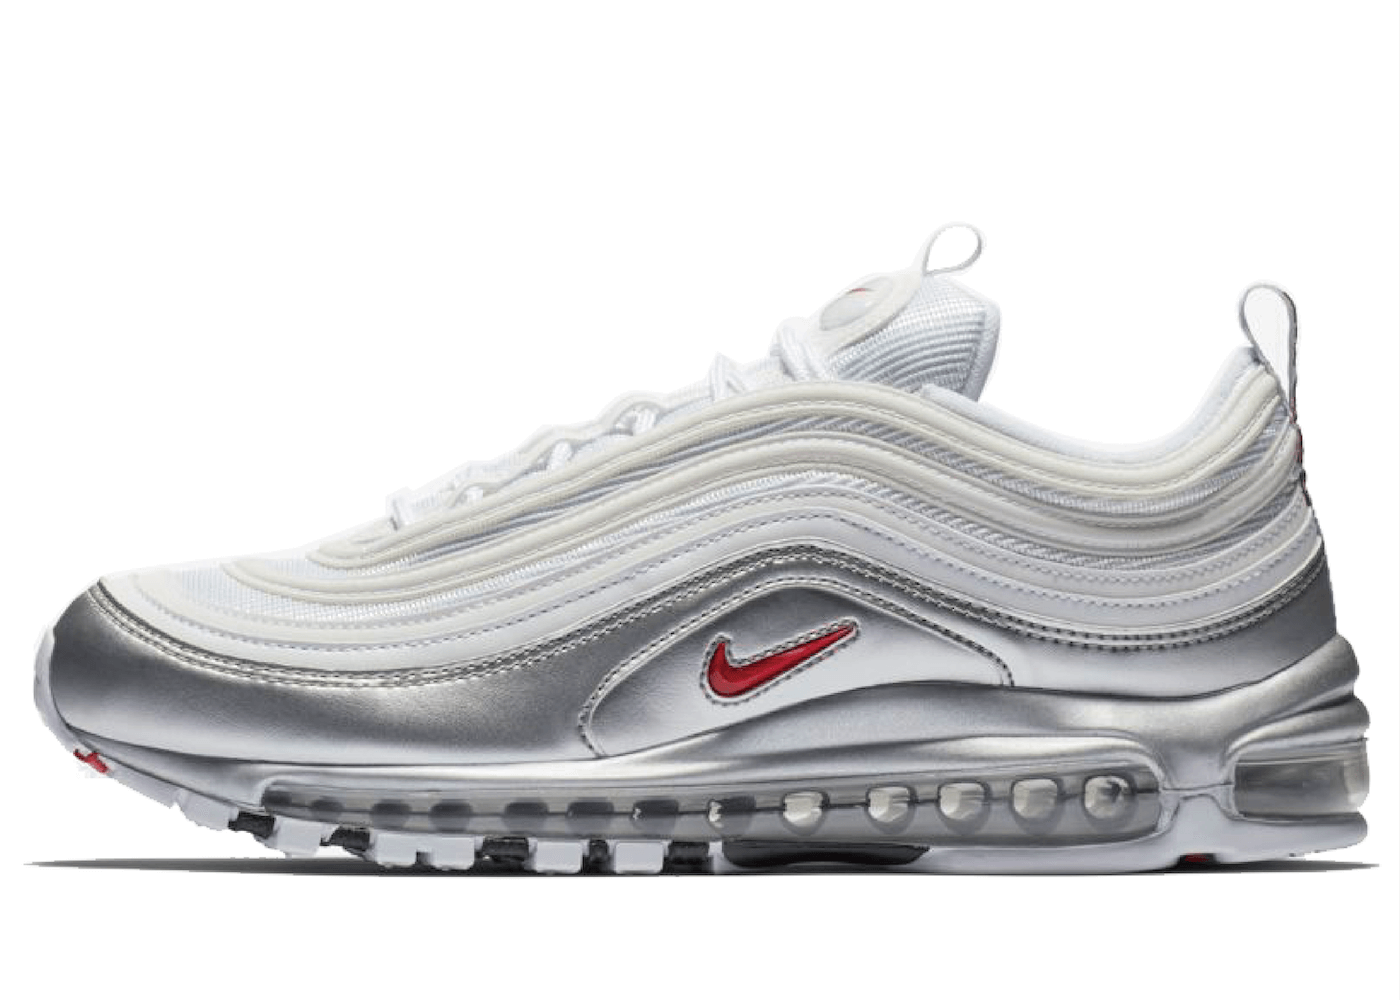 Nike Air Max 97 'Metallic Silver & Whiteの写真